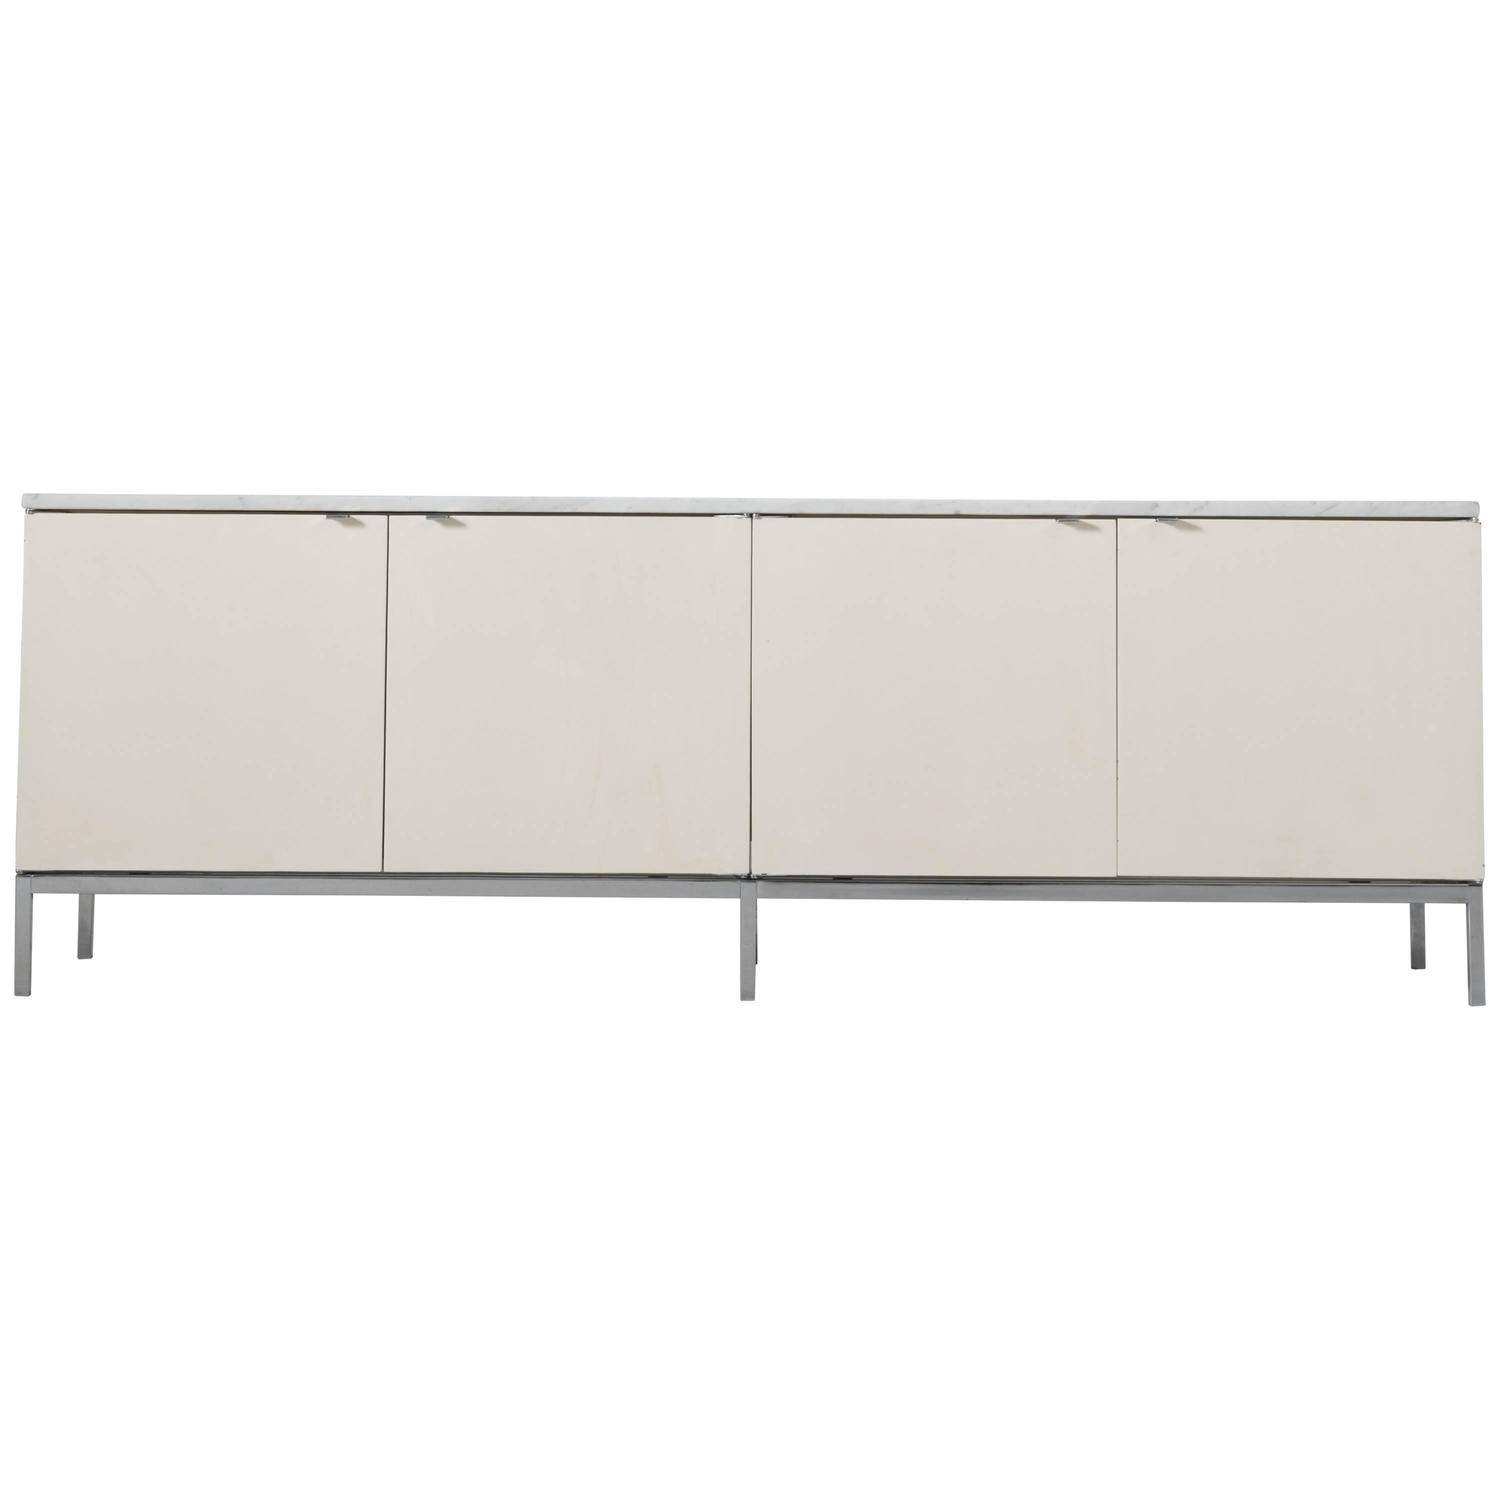 Florence Knoll Sideboard With Marble Top For Knoll International With Regard To 2018 Knoll Sideboards (#7 of 15)